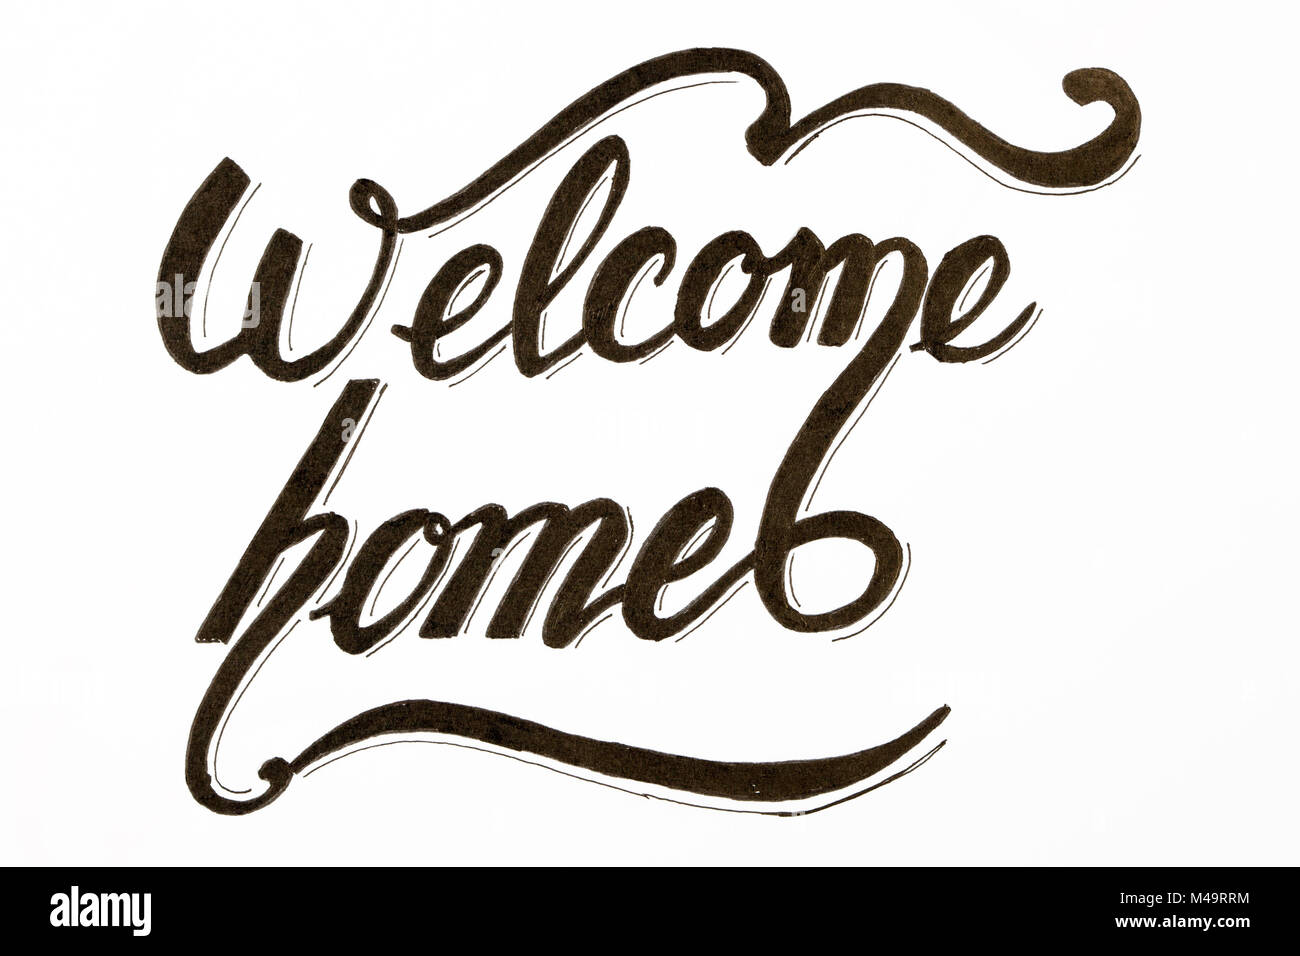 Welcome Lettering Design Stock Photos & Welcome Lettering Design ...